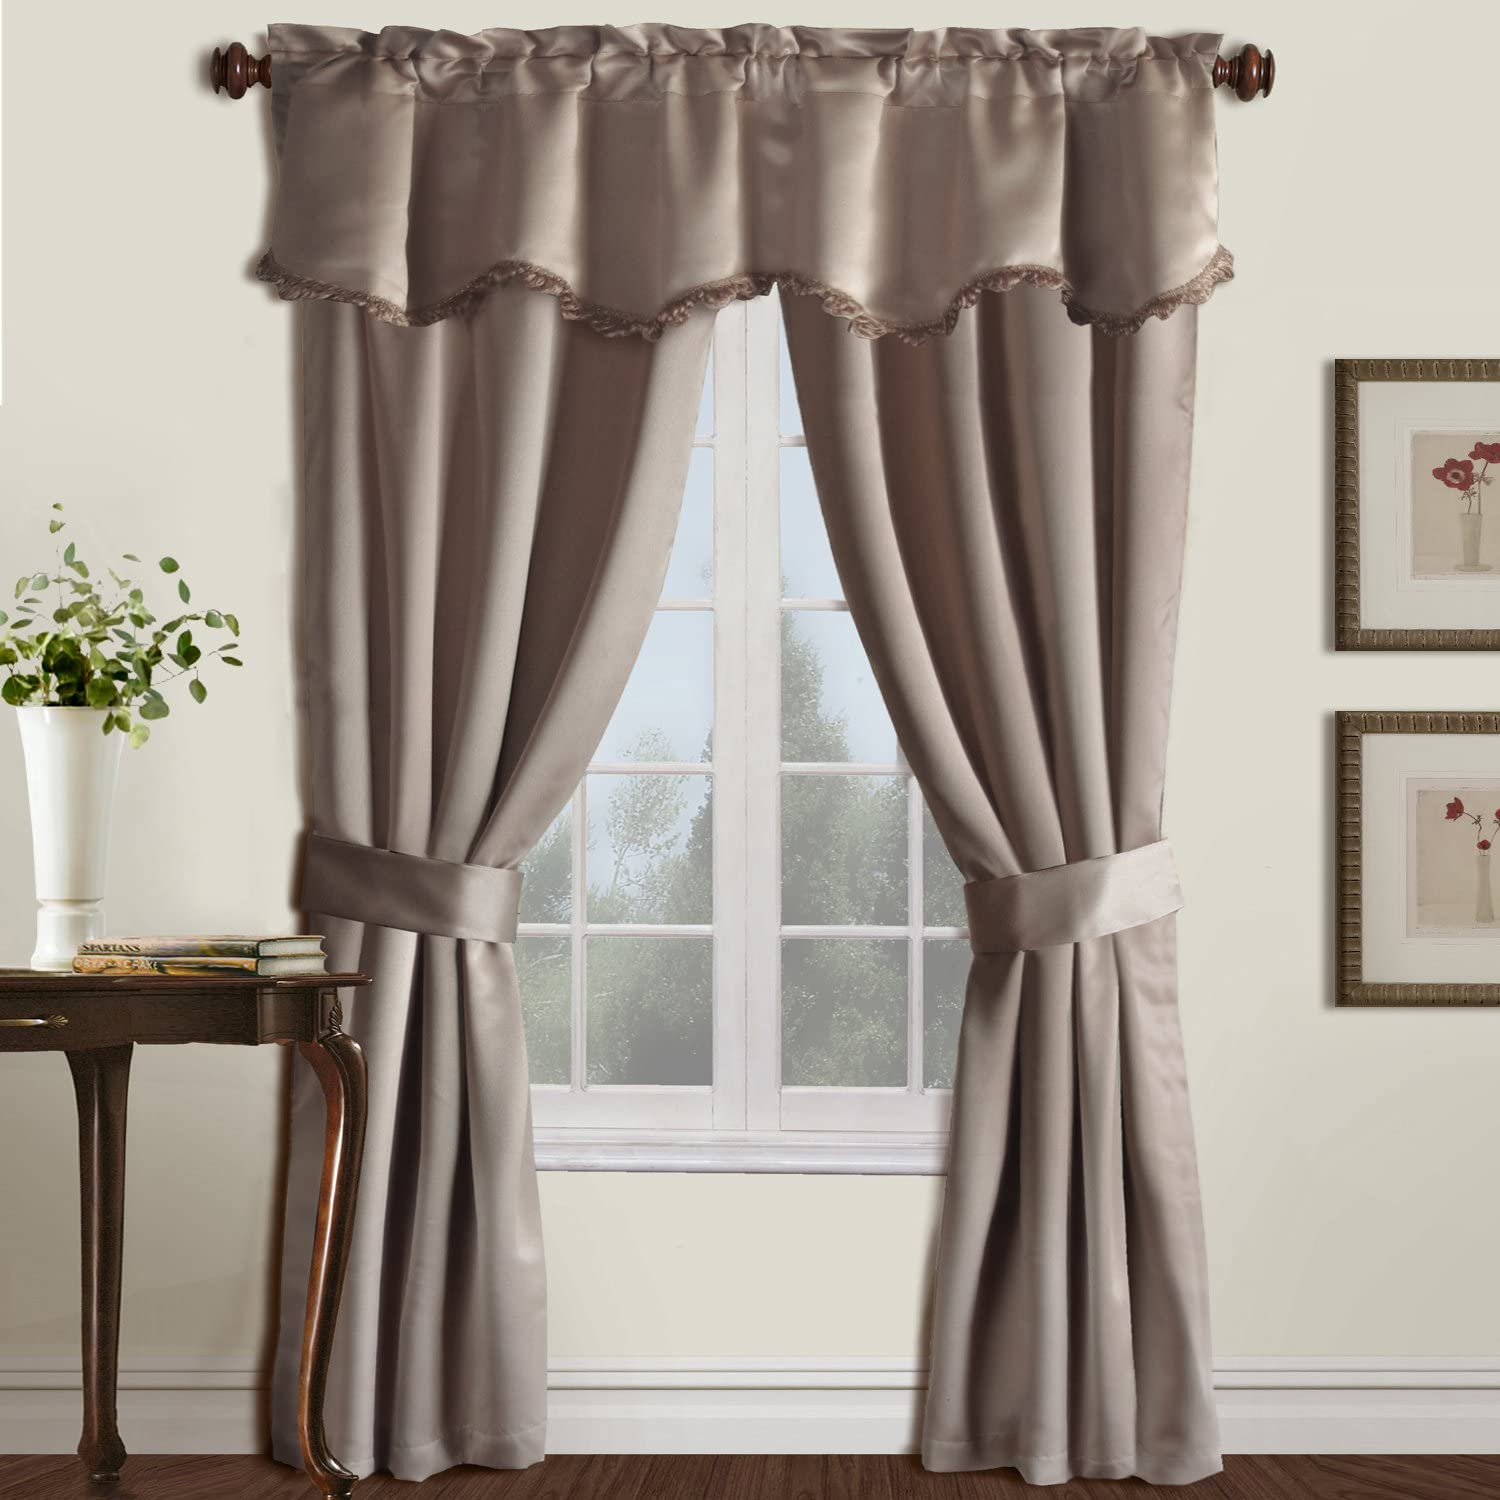 United Curtain Burlington Blackout Window Curtain Five Piece Panel Set, 52 by 63-Inch, Taupe